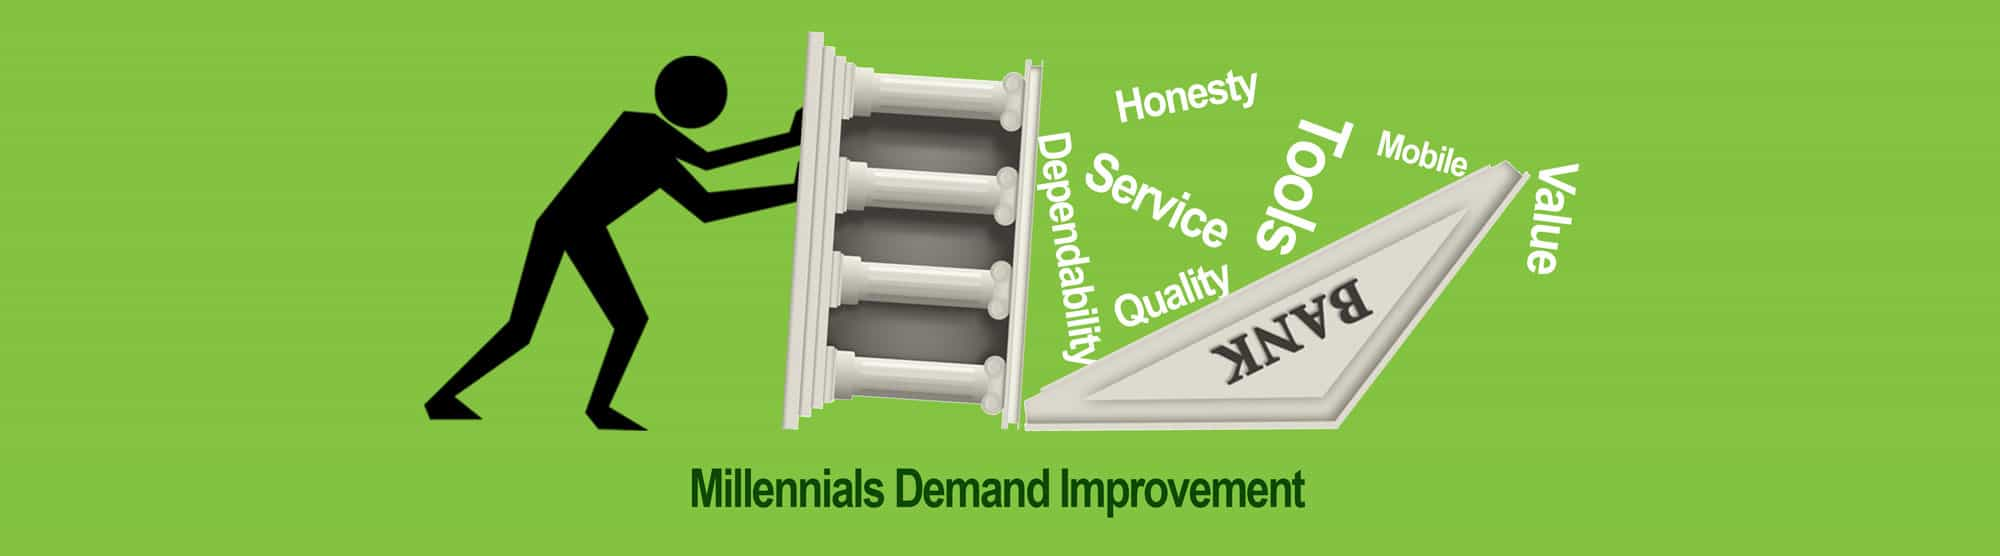 Millennials want improved service from Banks